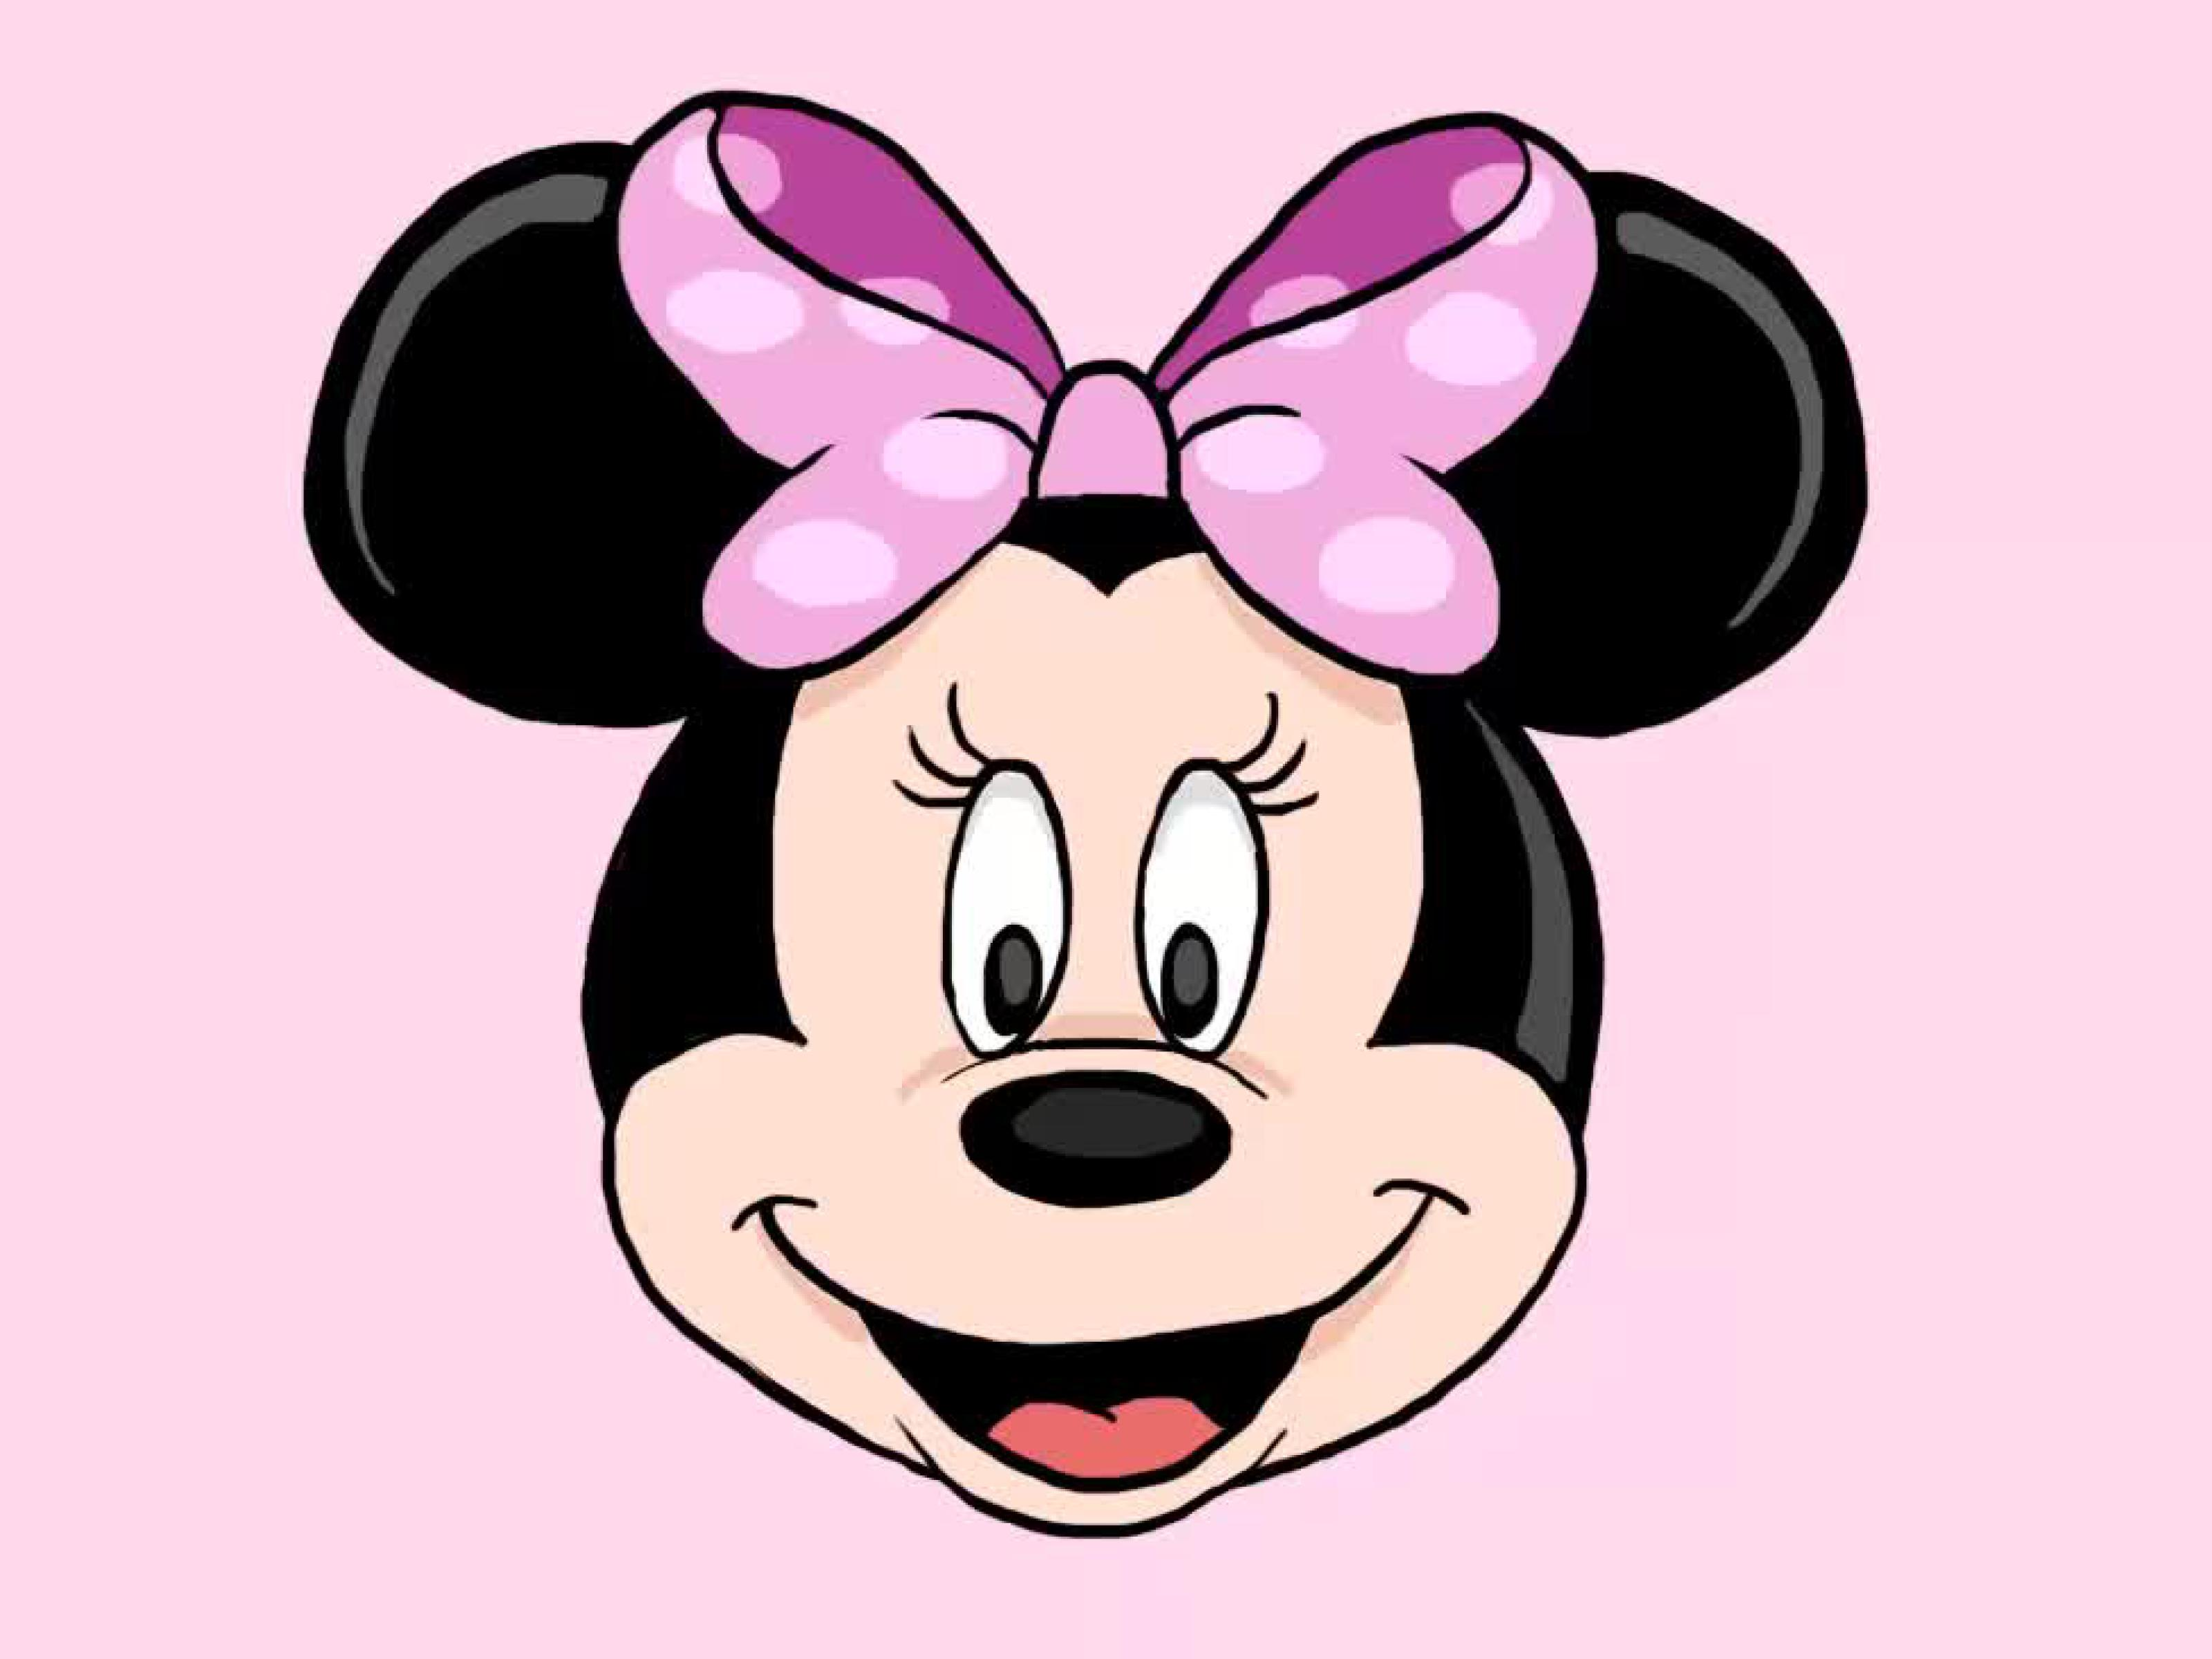 Eyelashes clipart minnie mouse. Ways to draw